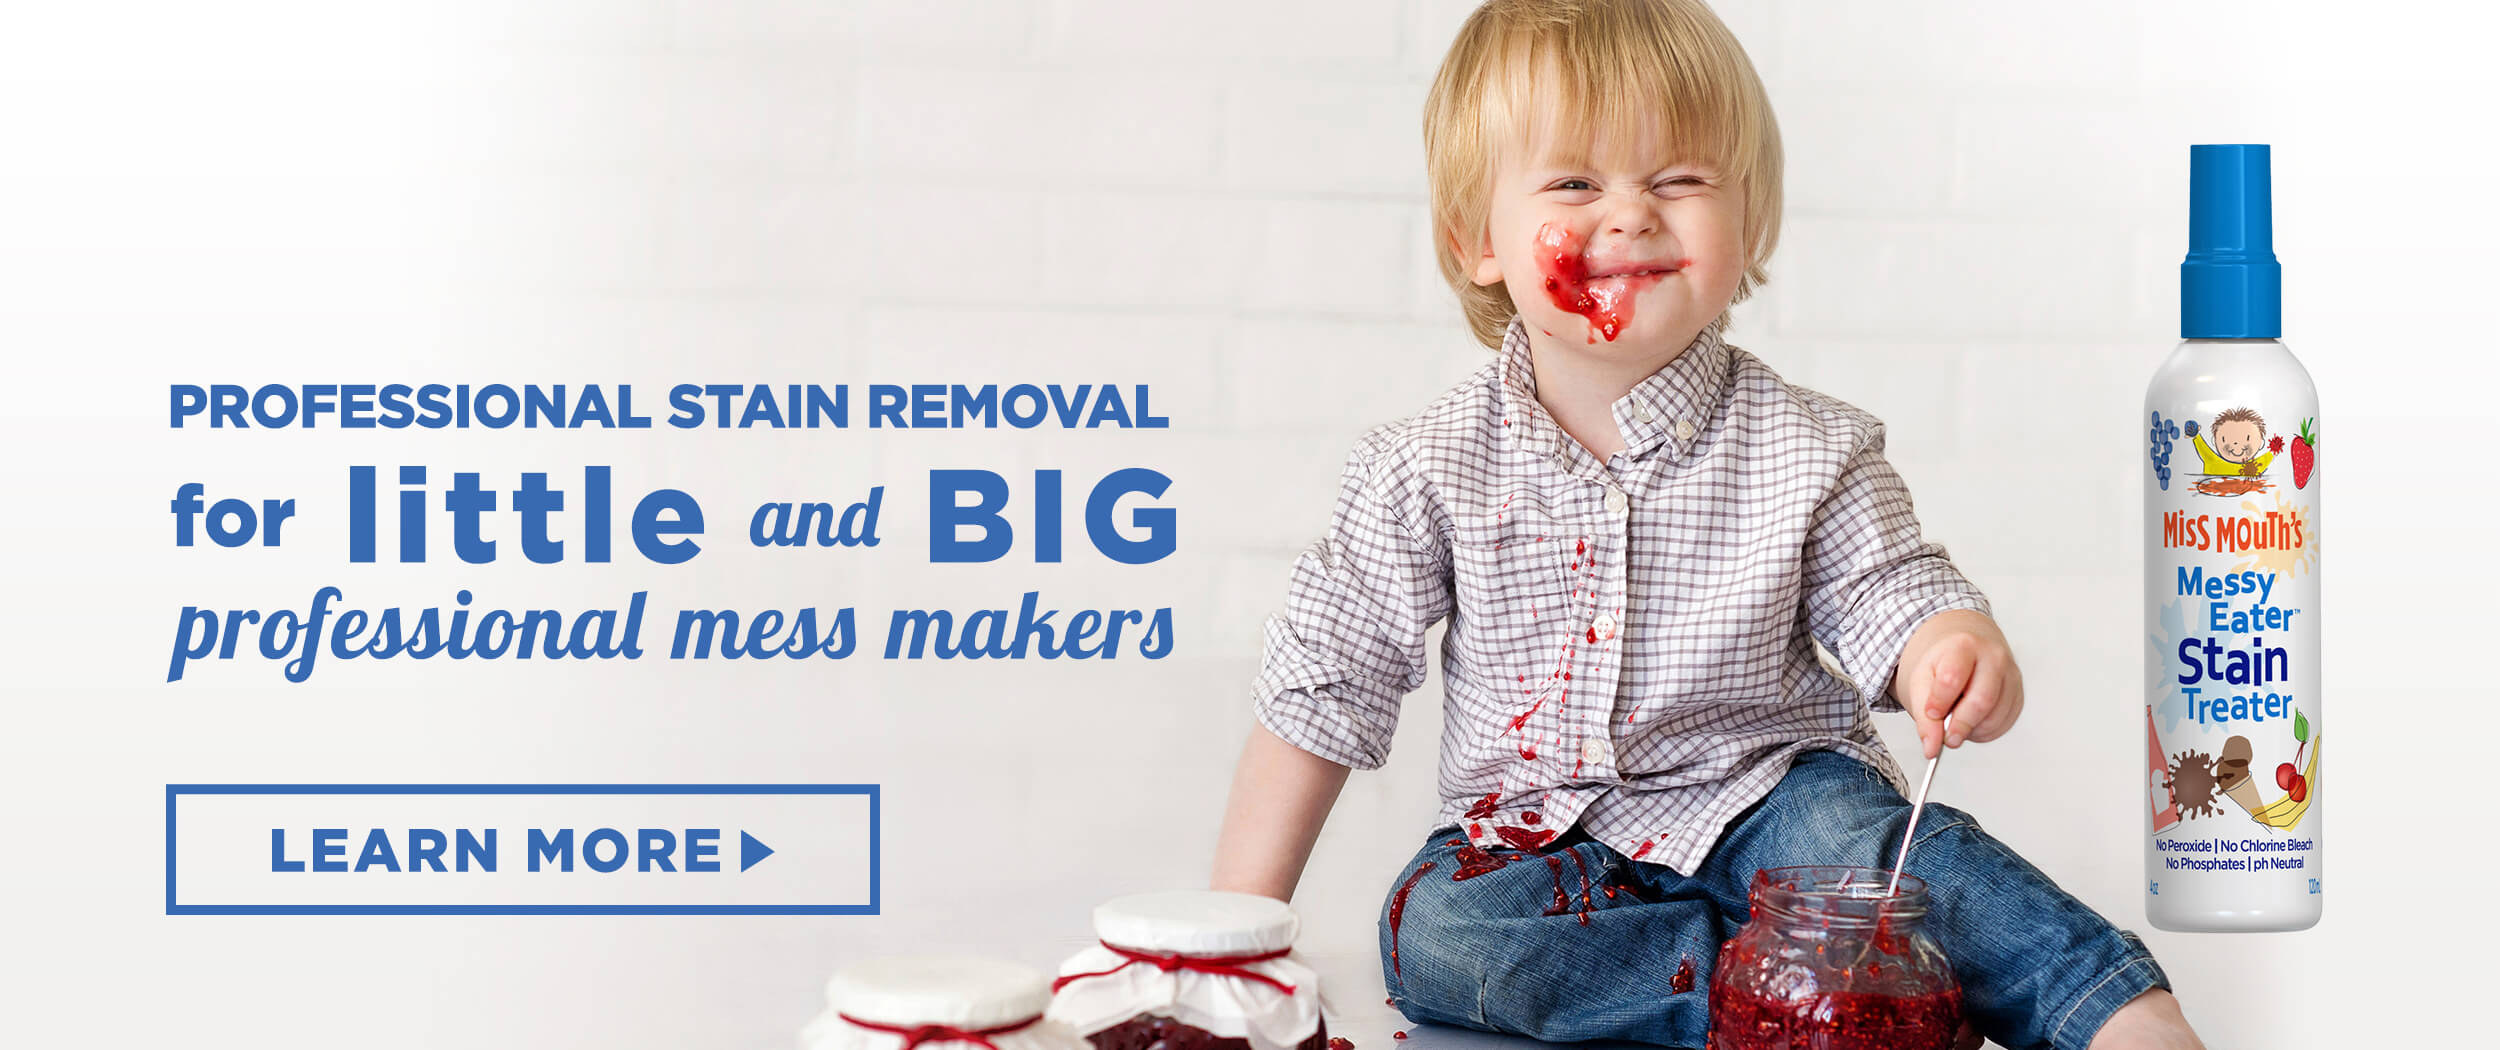 Miss Mouths Messy Eater Stain Treater Billboard 1